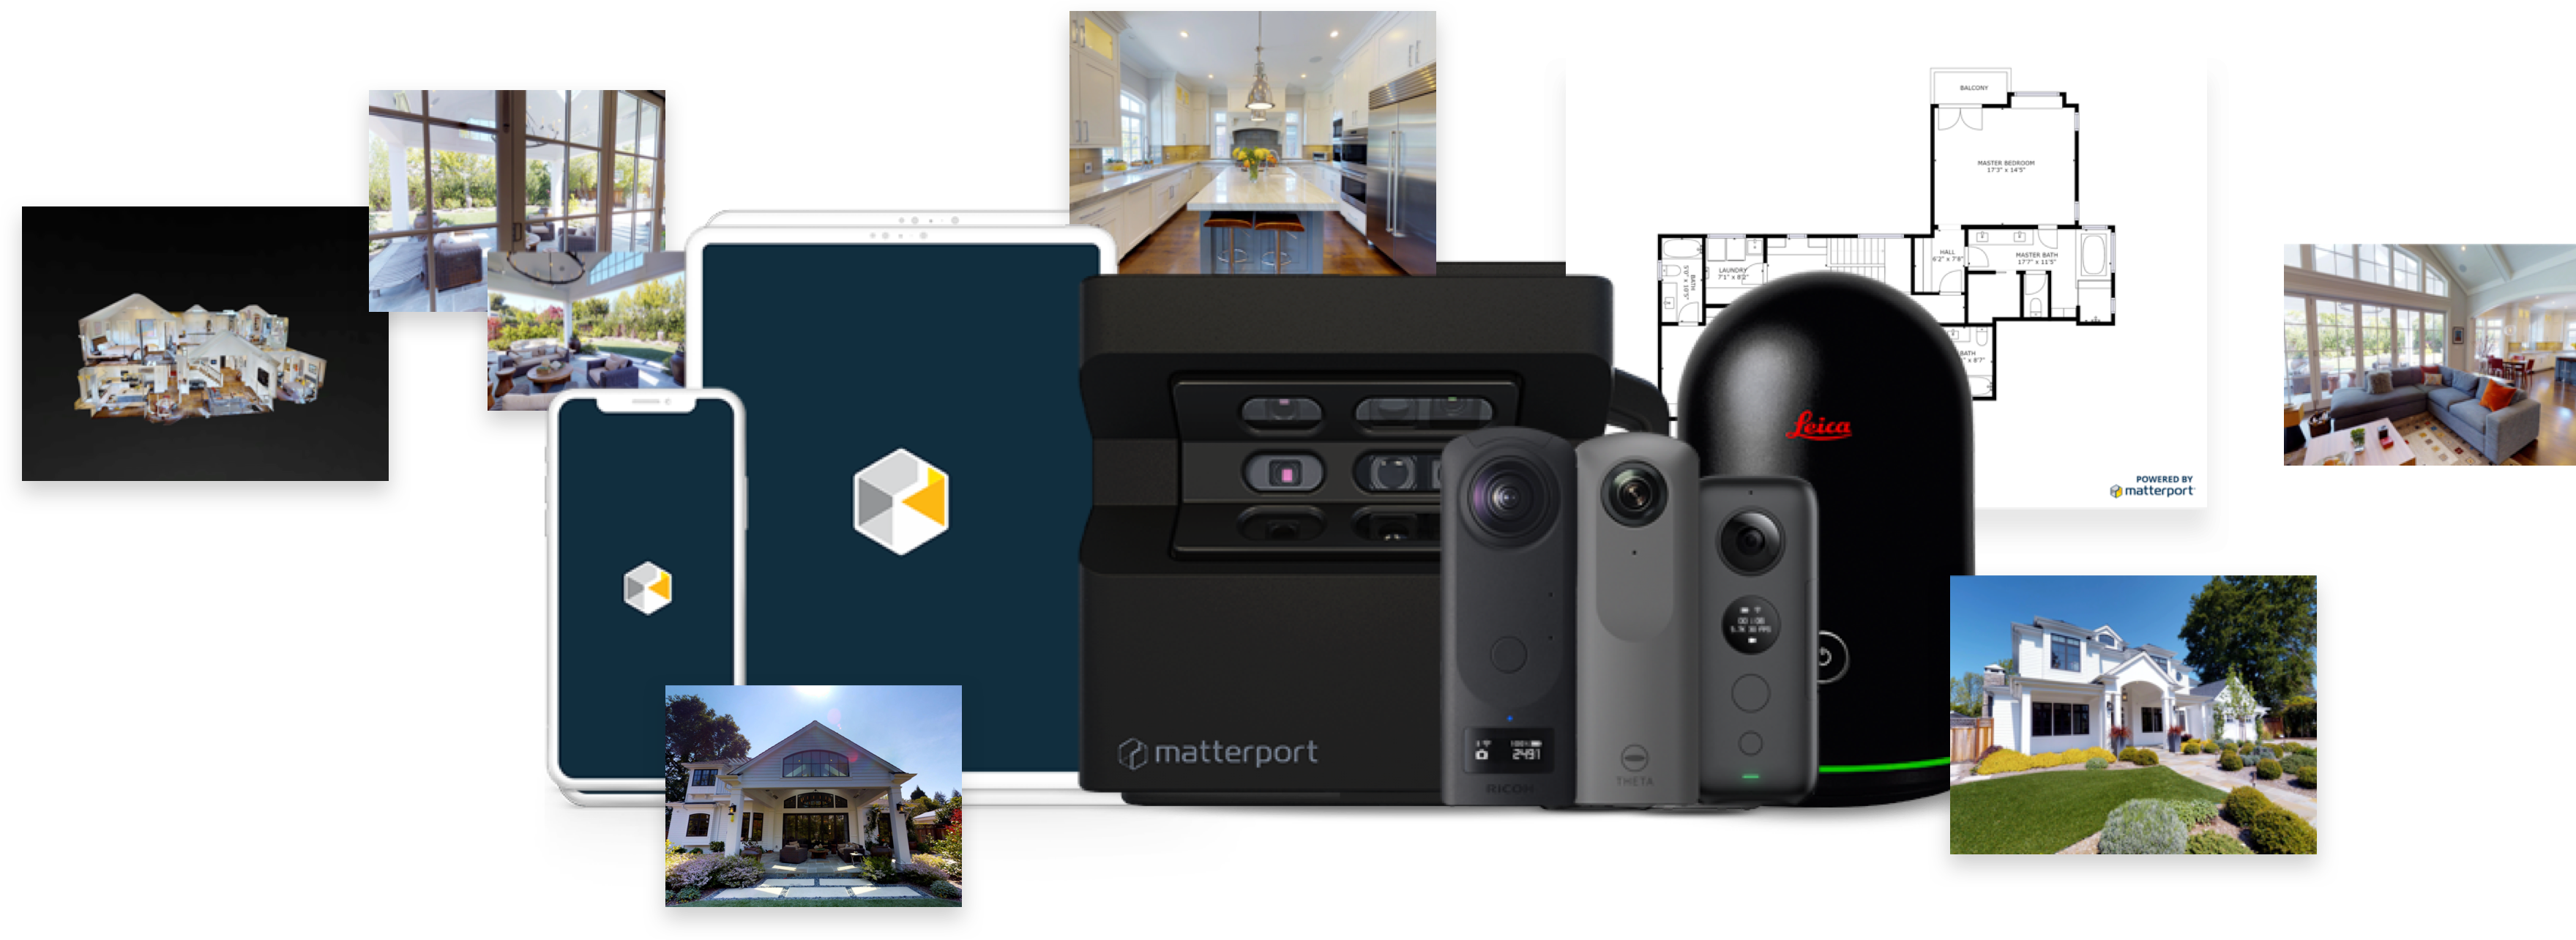 Matterport offers a variety of products for distrubing 3D models